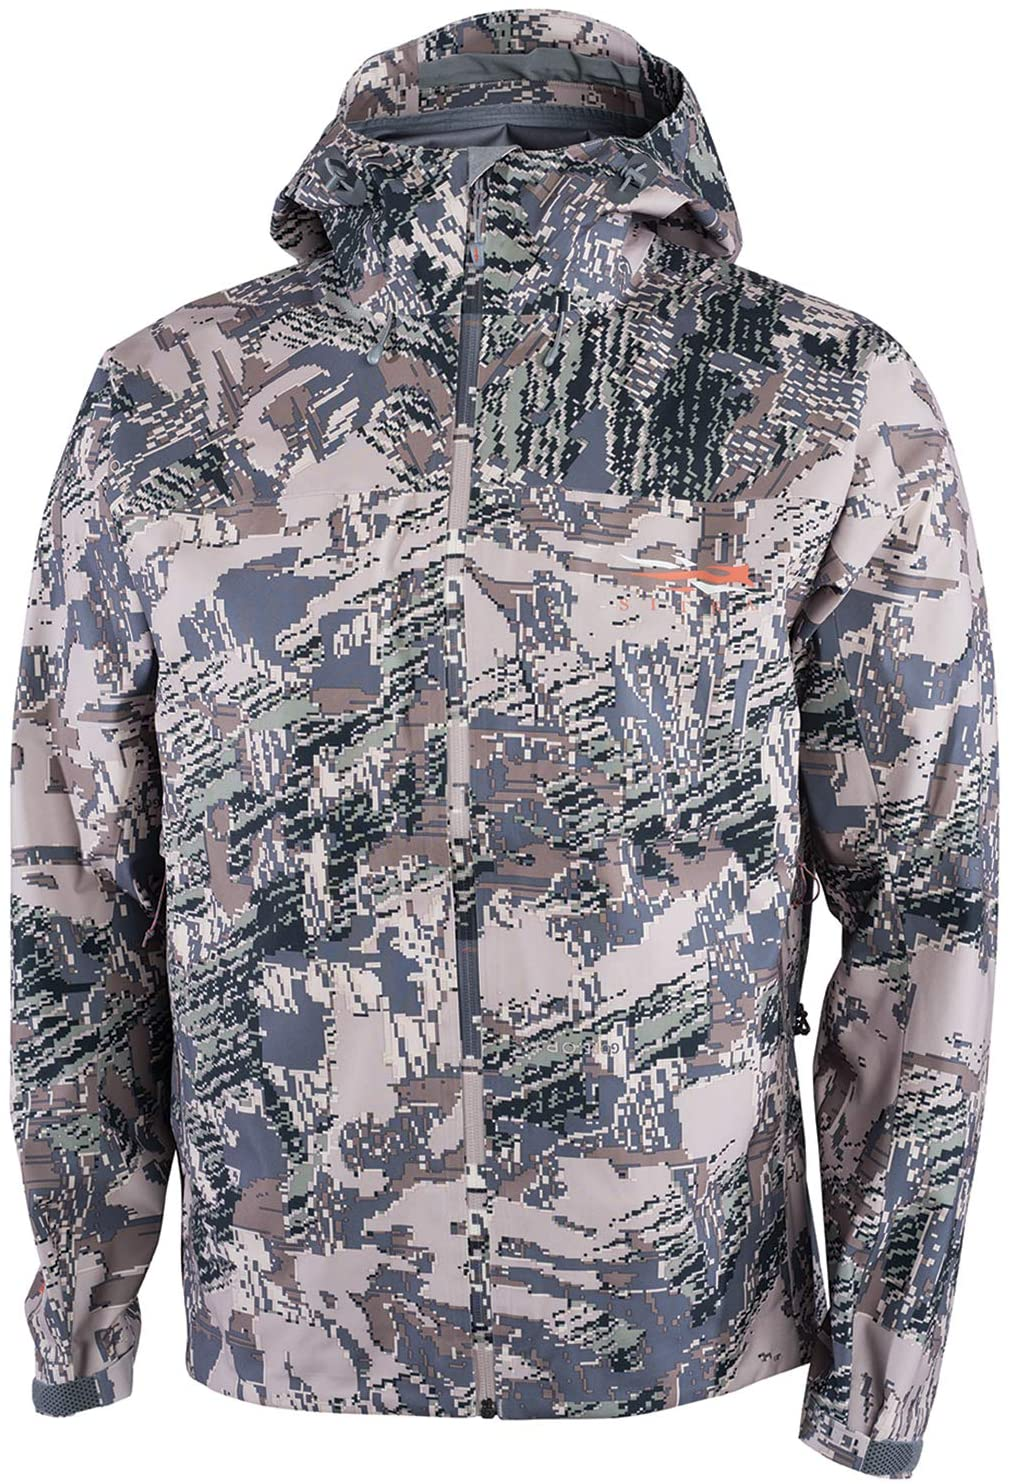 SITKA Gear New for 2019 Cloudburst Jacket Optifade Open Country Large